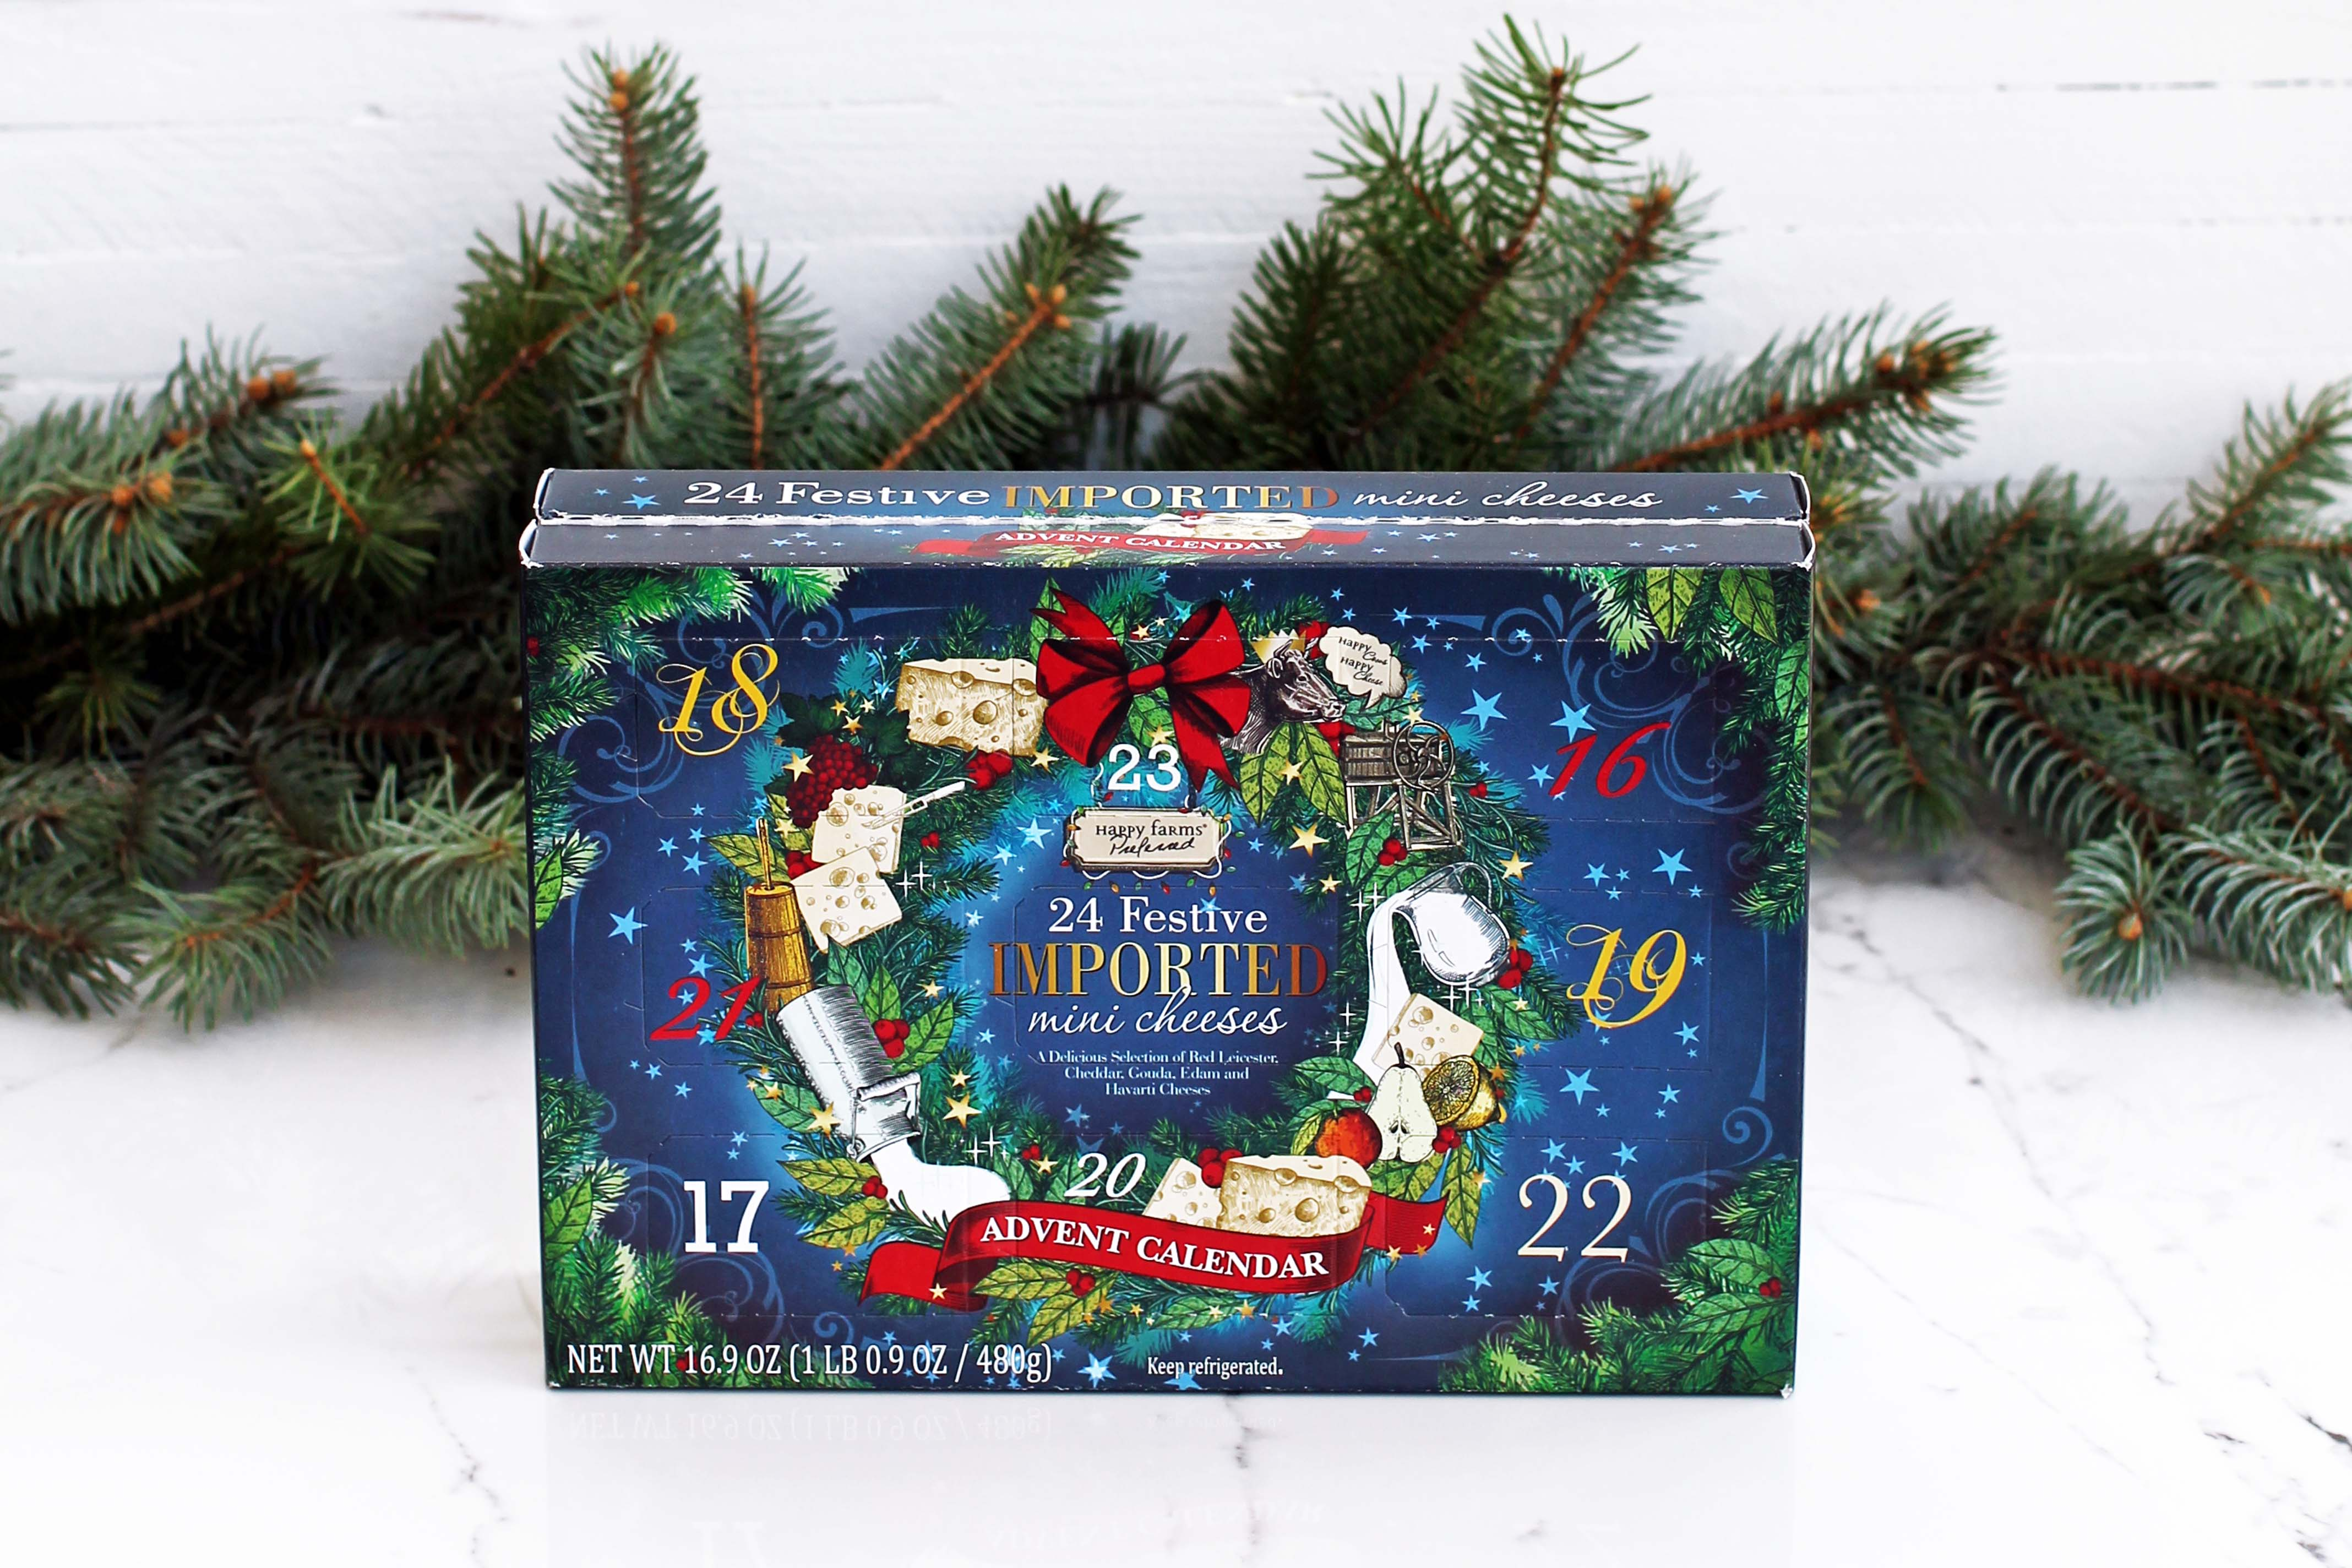 Cheese Advent Calendar 2020 Advent Calendars Are Here! | ALDI Blog